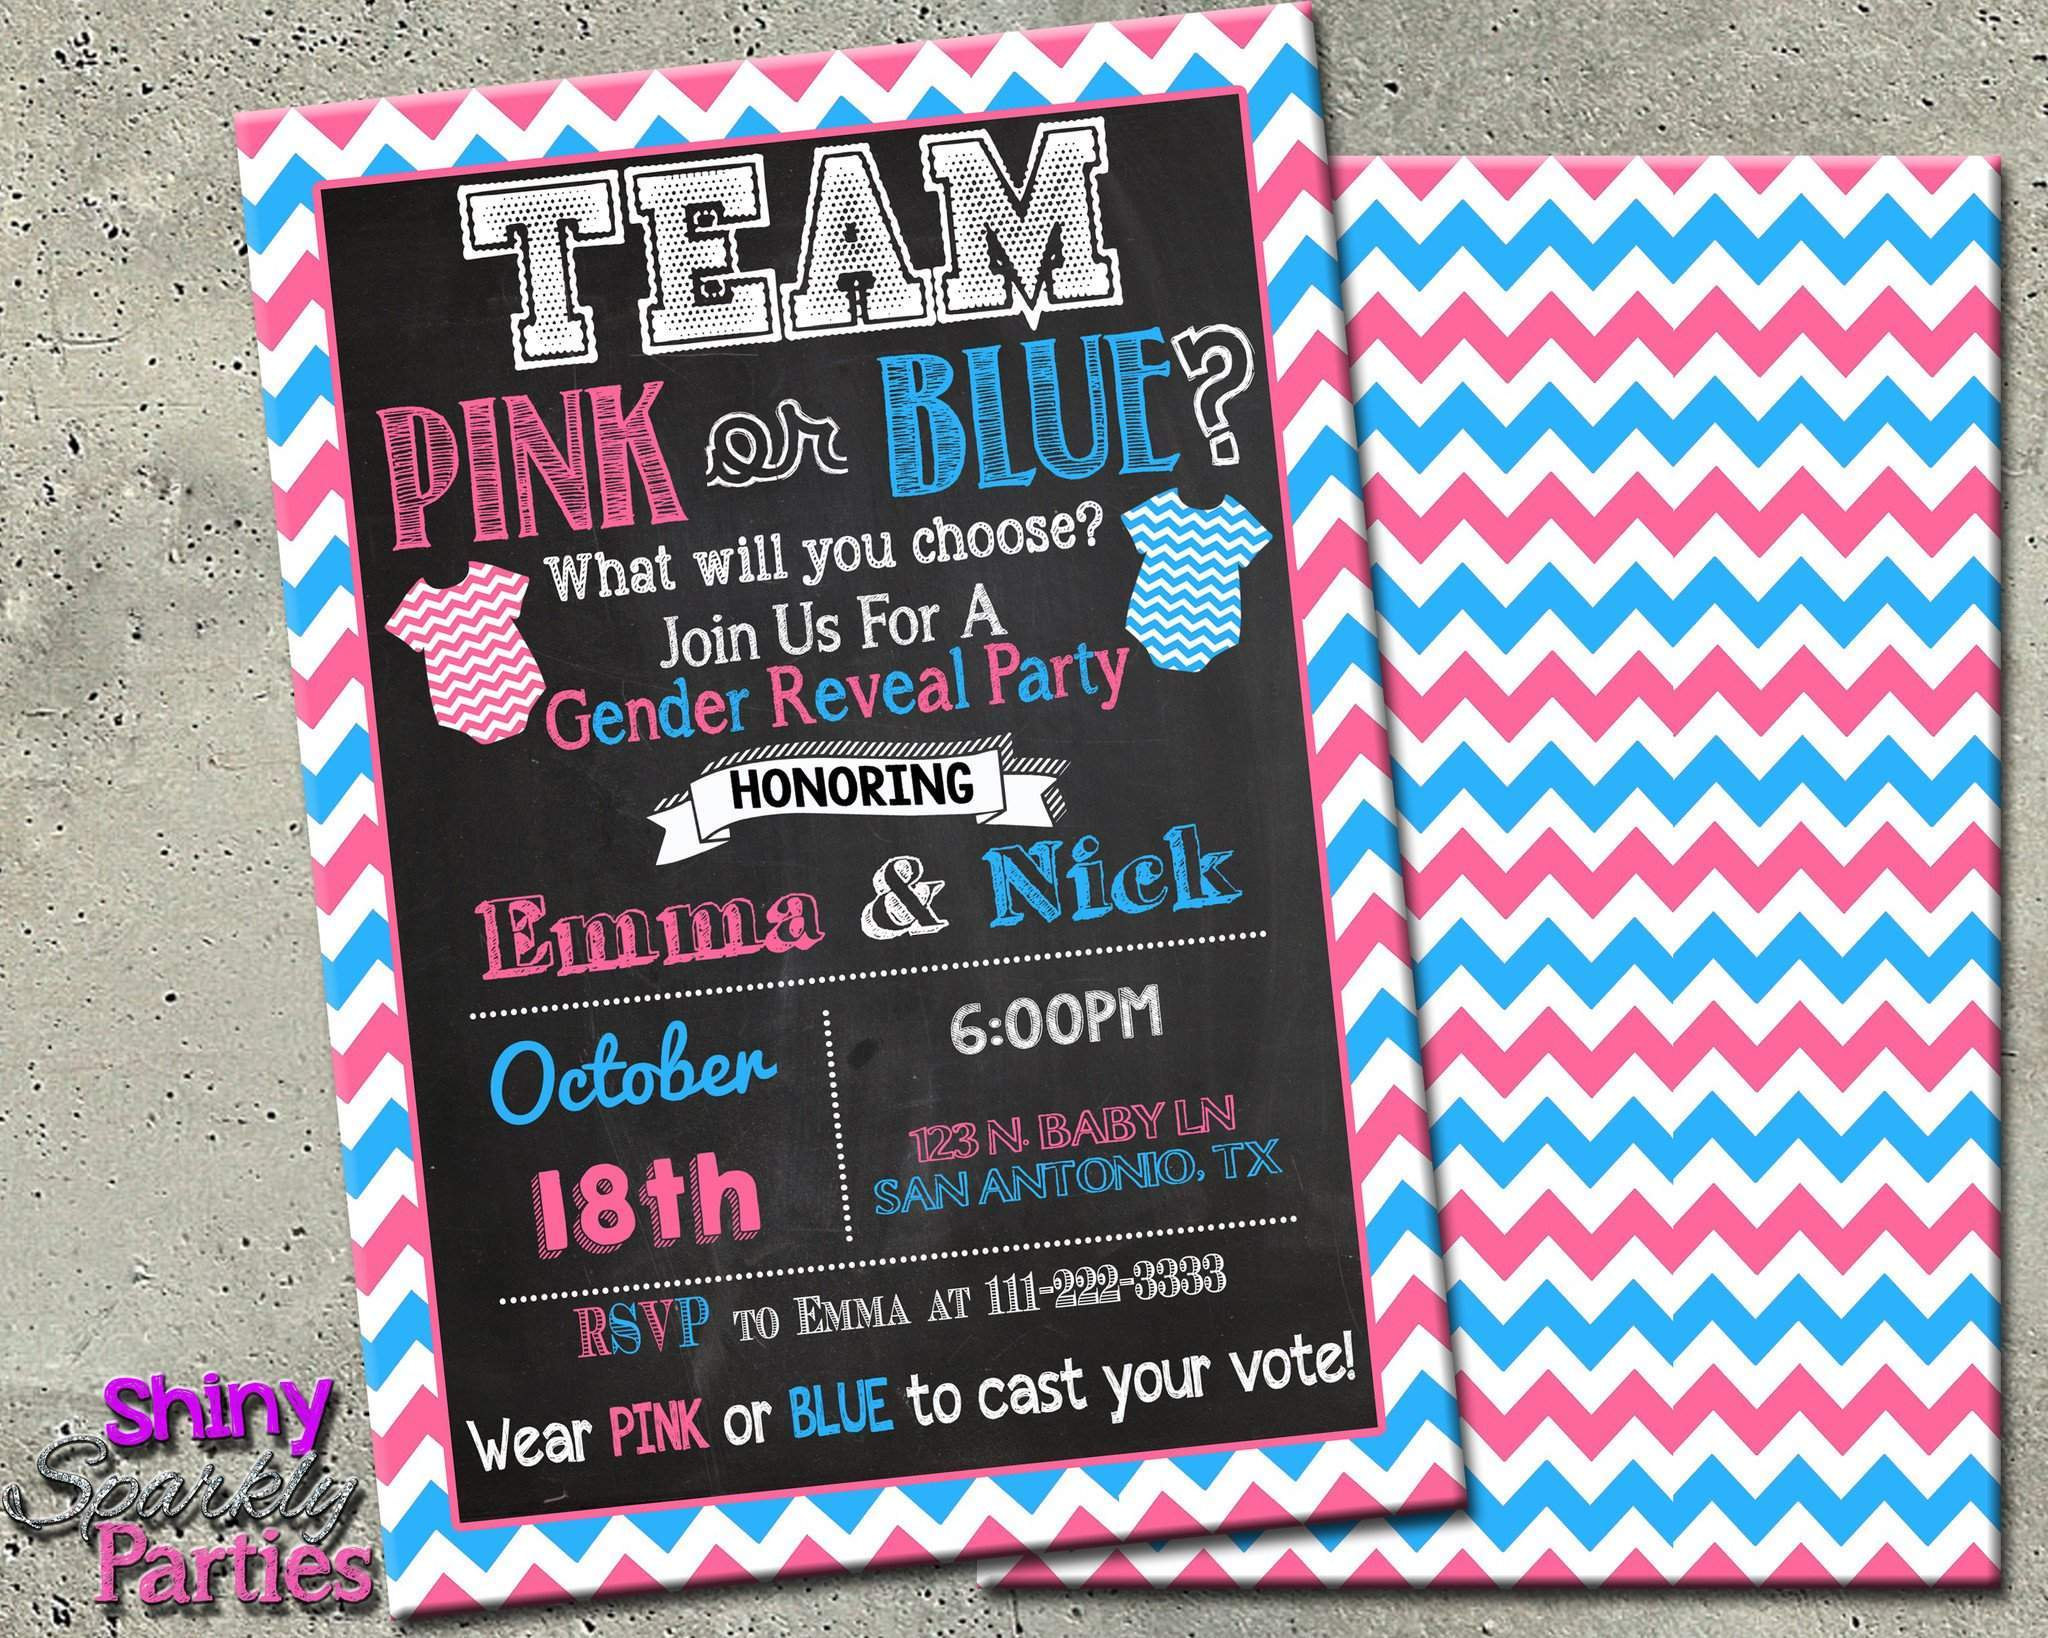 Gender Reveal Party Invitation - Team Pink Or Blue Invitation ...